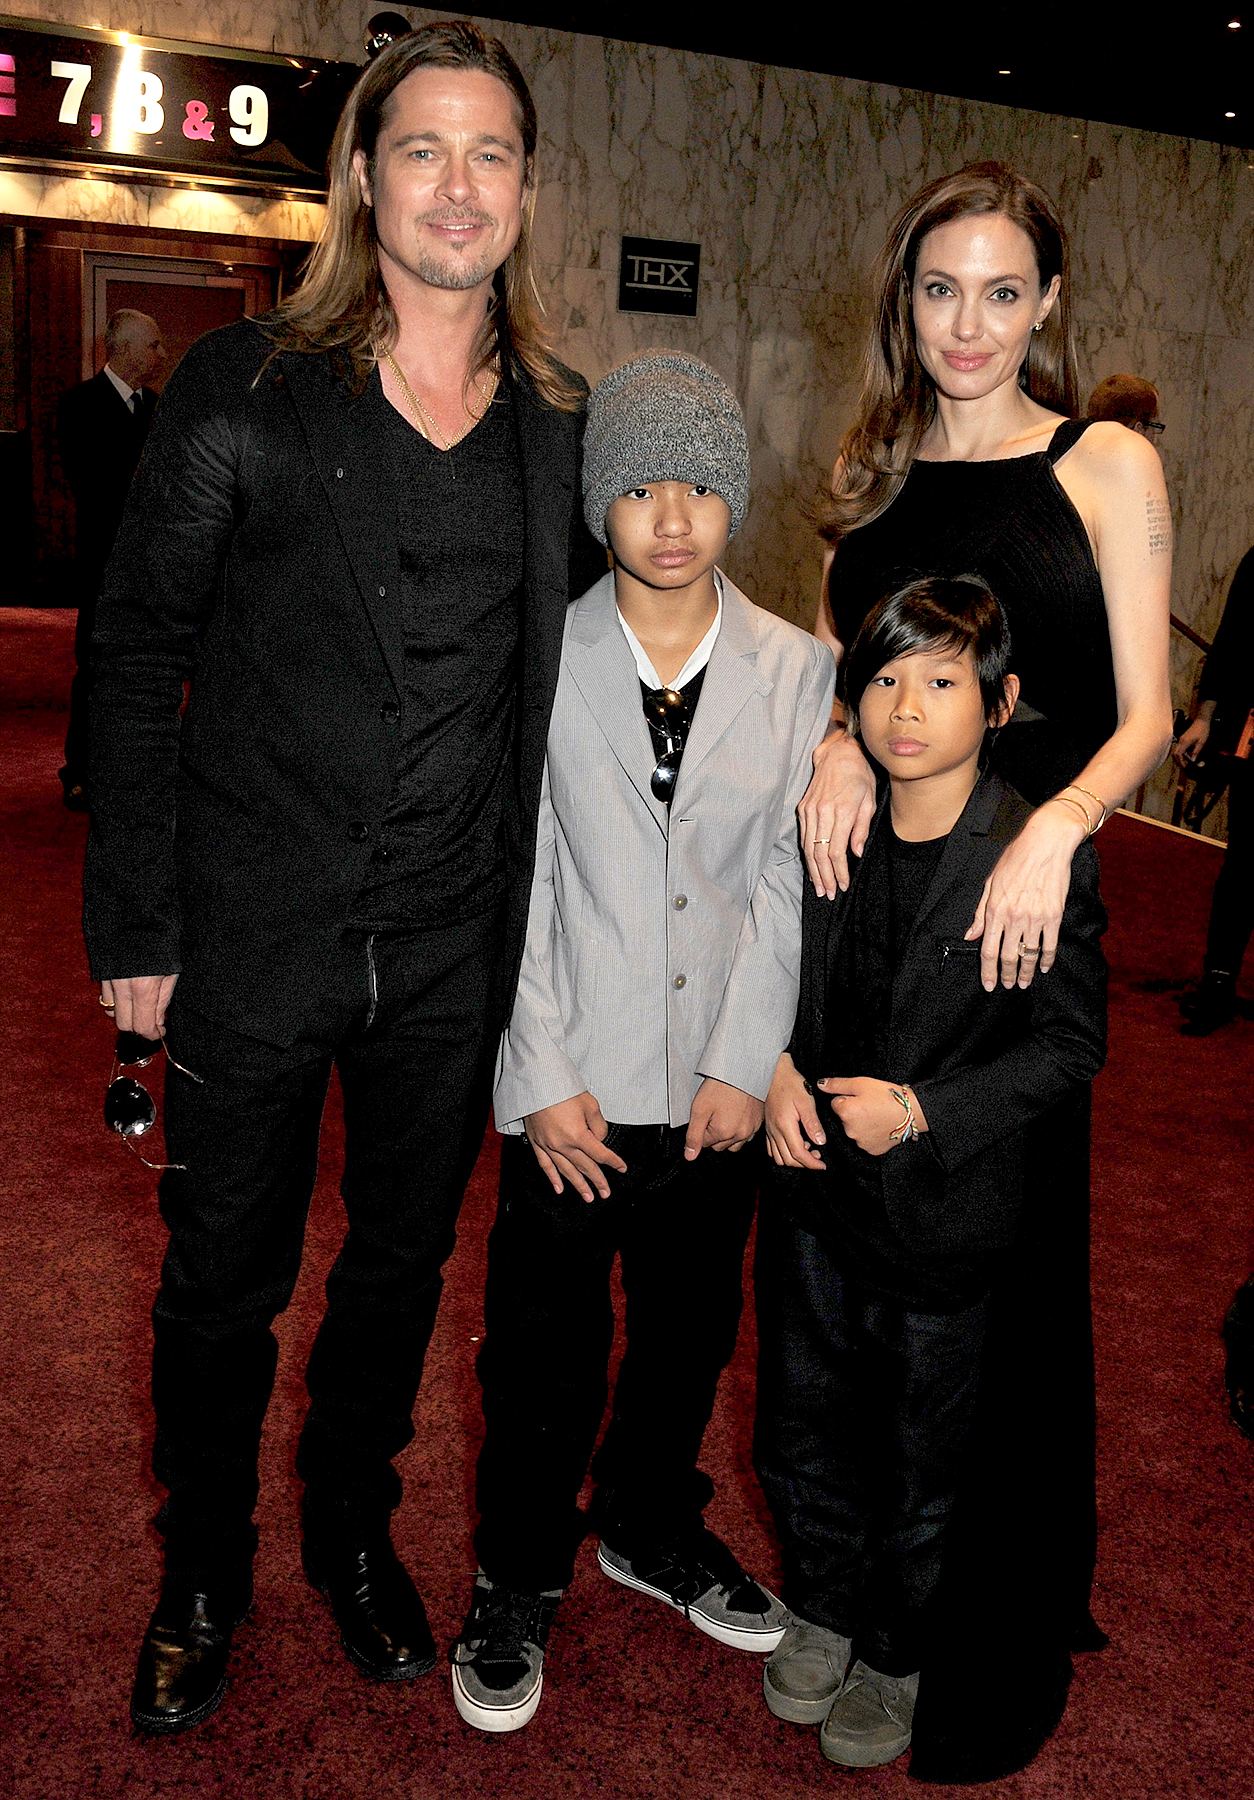 Brad Pitt, Maddox Jolie-Pitt, Pax Jolie-Pitt and Angelina Jolie attend the World Premiere of 'World War Z' at The Empire Cinema Leicester Square on June 2, 2013 in London, England.